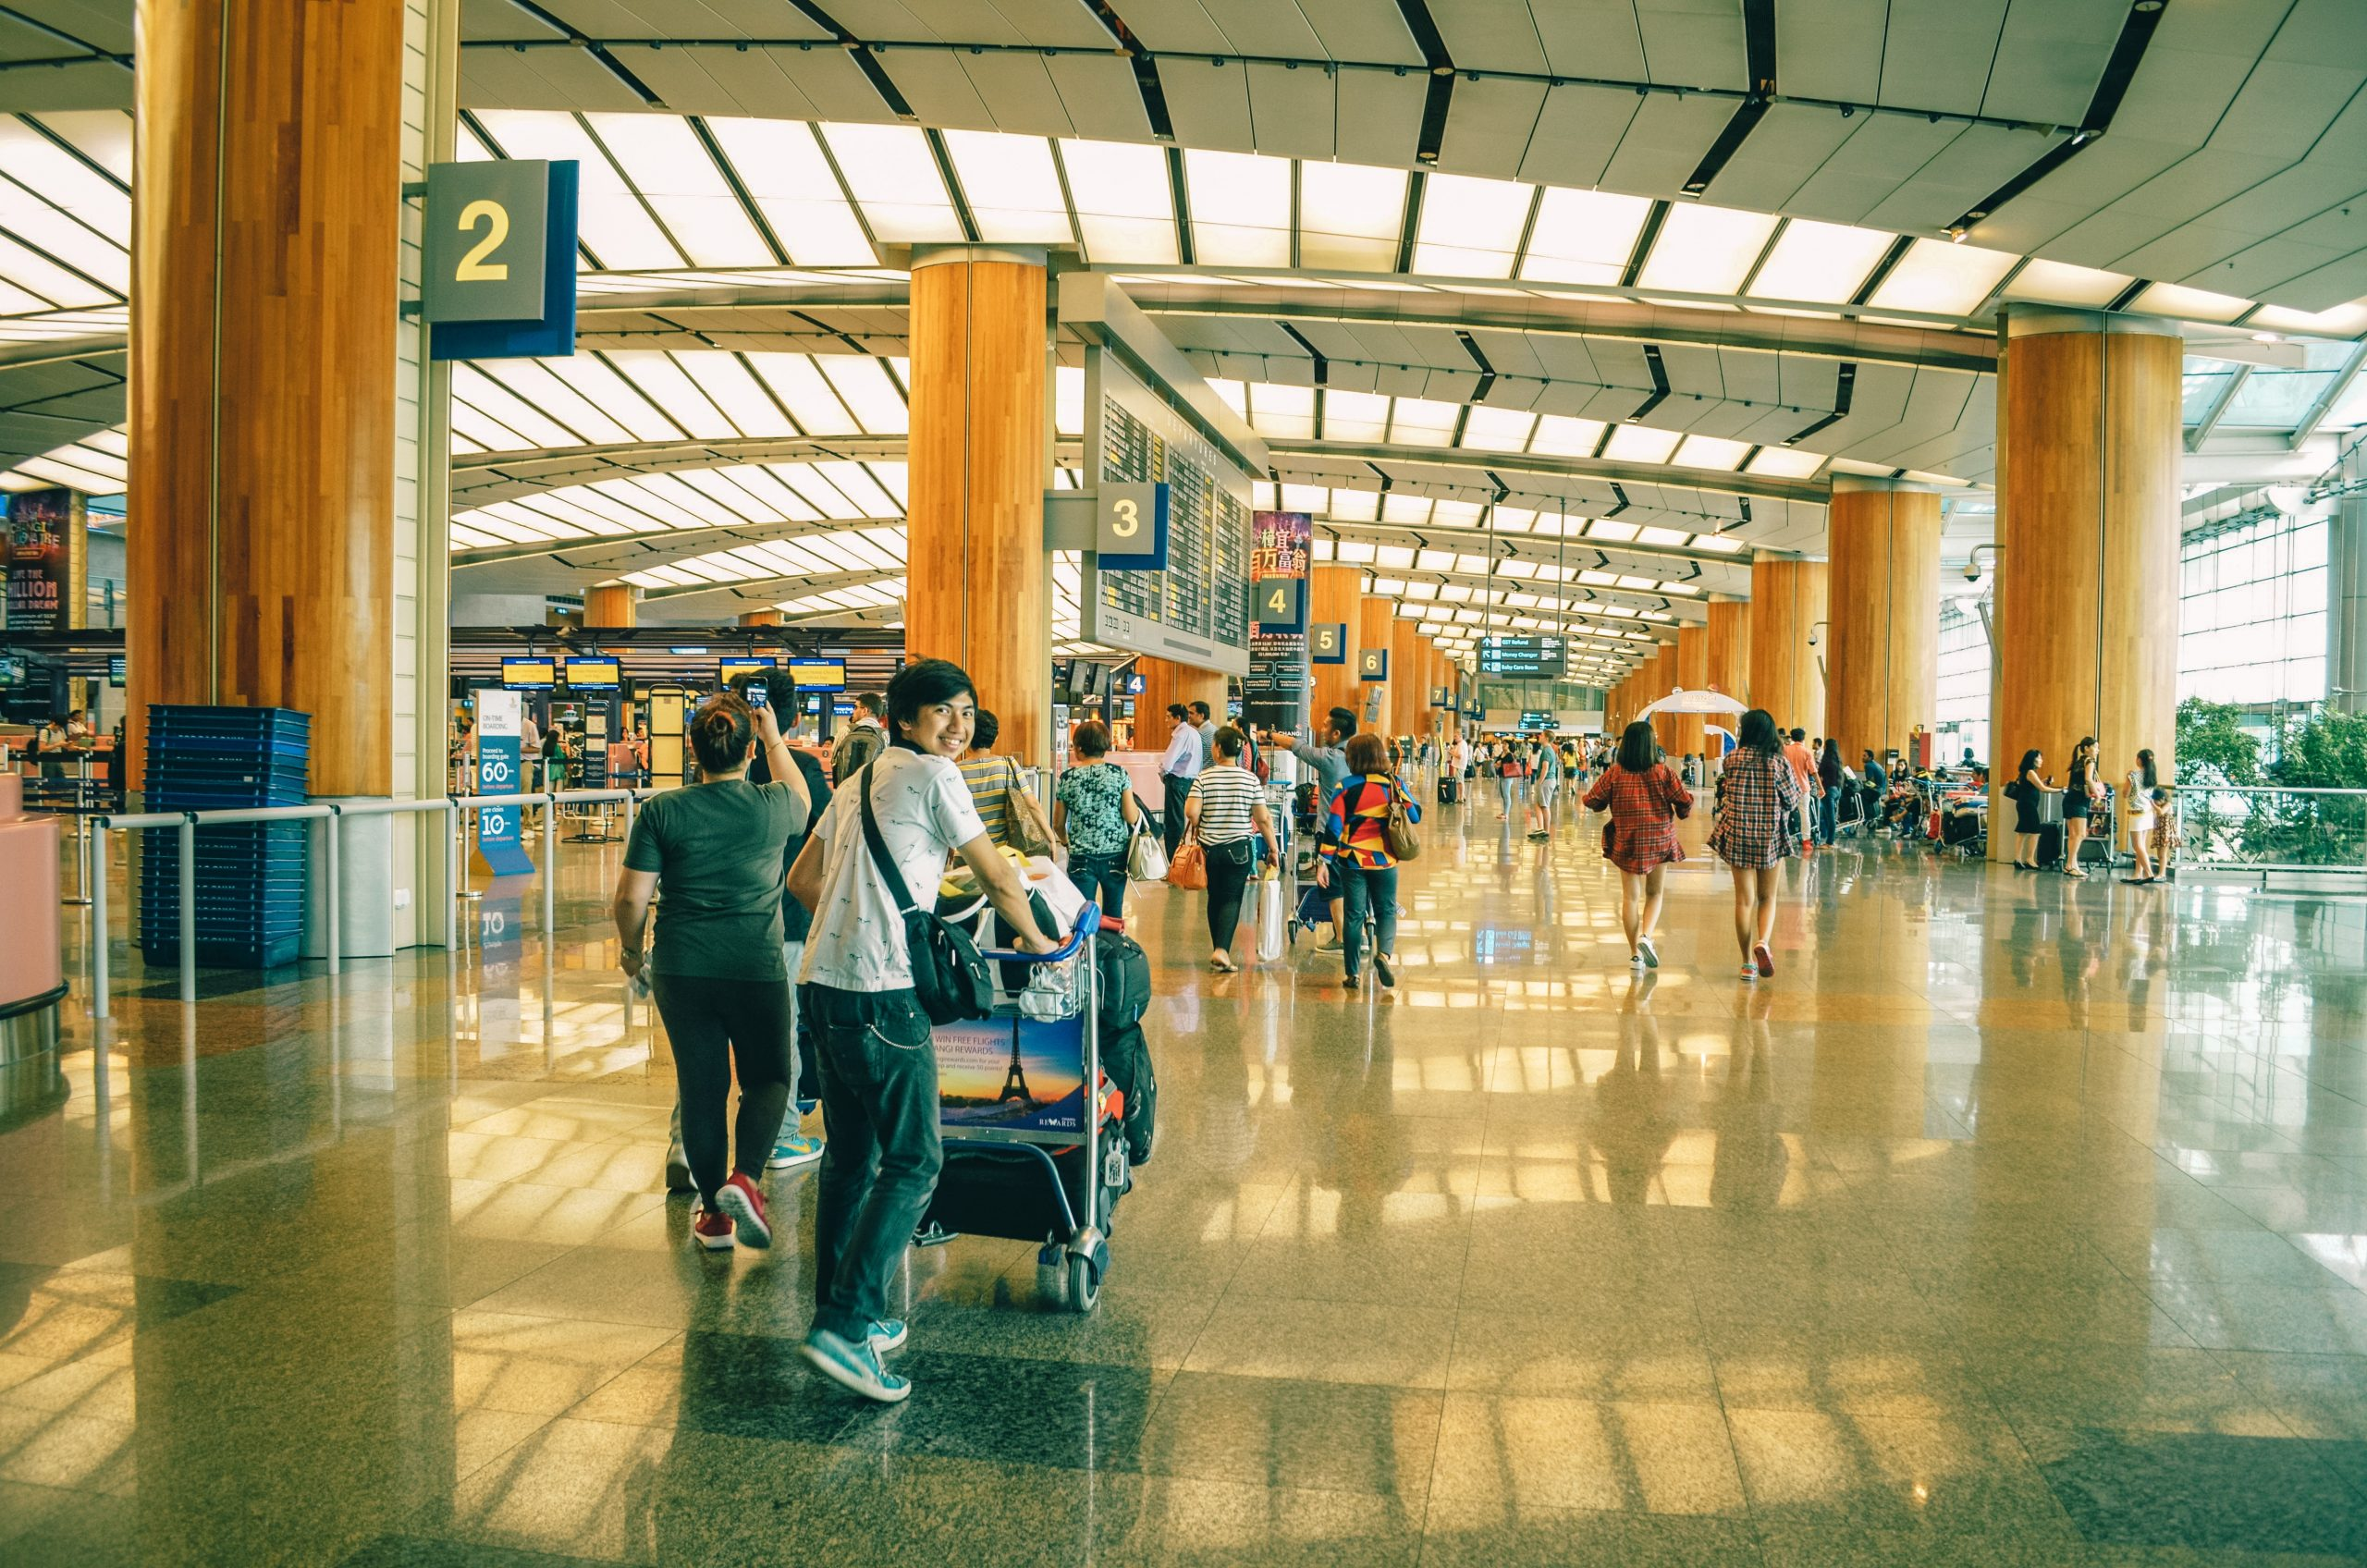 30 Important English Words for When You Are at the Airport